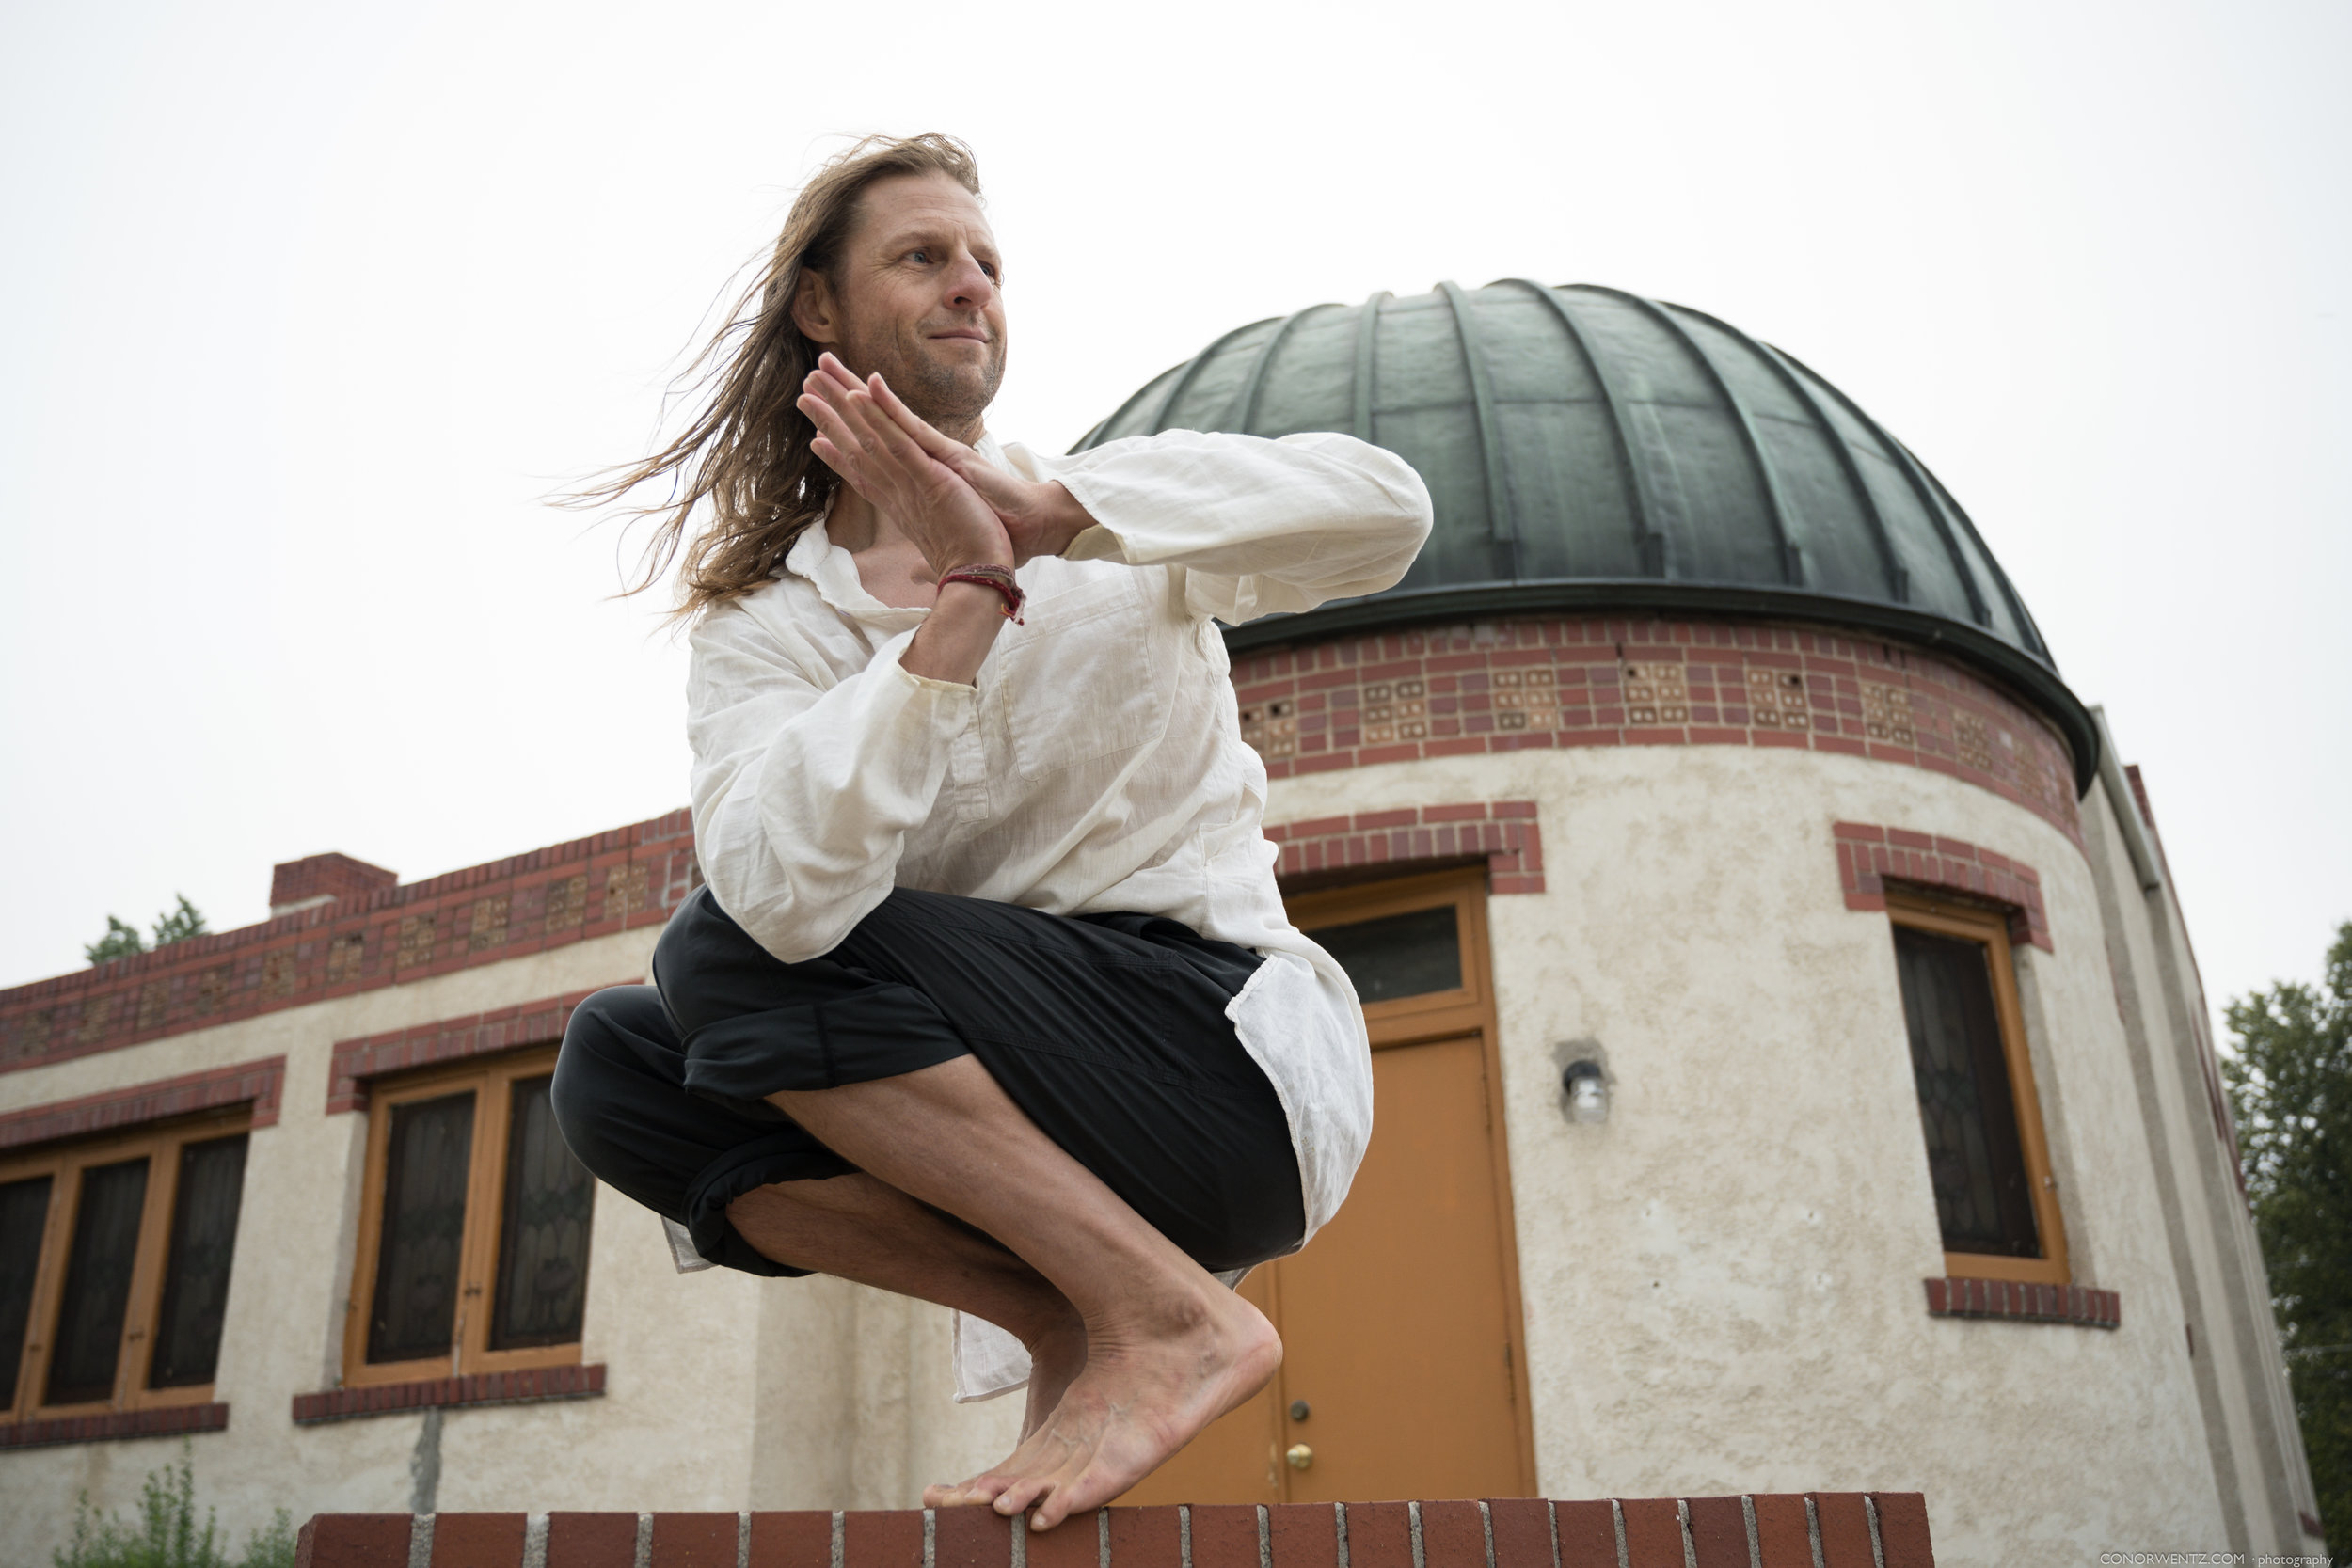 """Derik was first introduced to yoga in 1991 while on a rogue trip to India just after highschool. As he studied asana, yoga philosophy and meditated on the shores of the Ganges. A whole new world opened up inside of him and the tone for his entire adult life was set. Over the ensuing decades, he studied with world-renowned asana and meditation teachers, completed multiple 200 and 300-hour trainings, and returned to India many times to deepen his study.  He considers Baba Hari Dass and Yogarupa Rod Stryker to be his primary teachers. In 2003, he and his wife (Dr. Brenna Hatami) started   Axis Yoga Trainings   in Denver Colorado. Axis, soon to be the """"Denver Yoga Underground"""", is a school dedicated to workshops and yoga teacher trainings and is a safe haven for a diversity of people who may prefer to practice outside of a studio setting.  Personally, he believes that we each have a purpose and that life circumstances lead us an evolutionary journey to understand ourself and the role we must play. All experiences, whether """"positive"""" or """"negative"""" are an opportunity to enrich our spirit and character. Yoga aids in that process."""